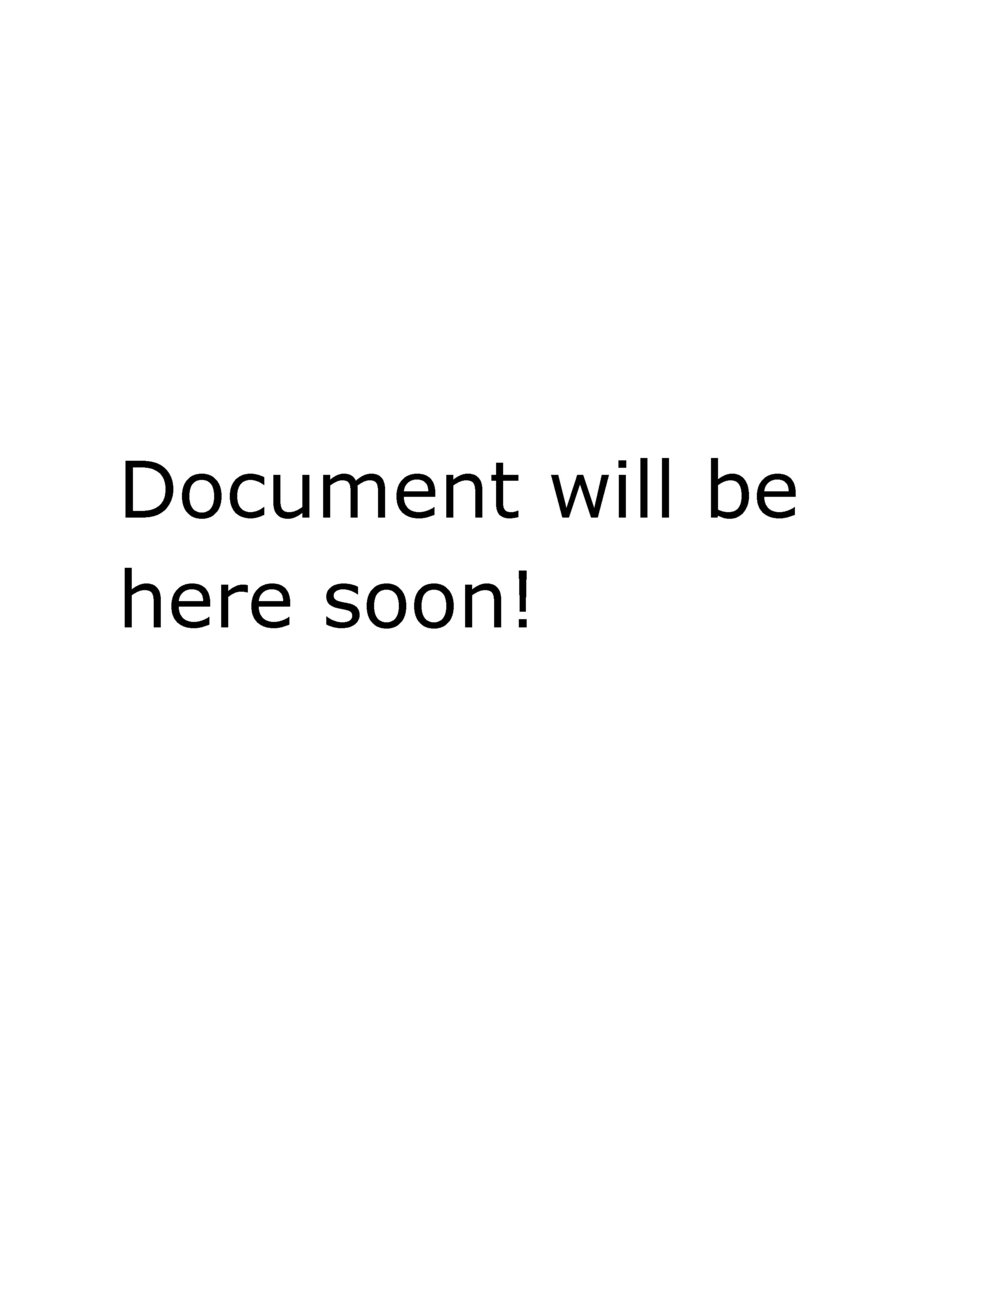 Document will be here soon.jpg